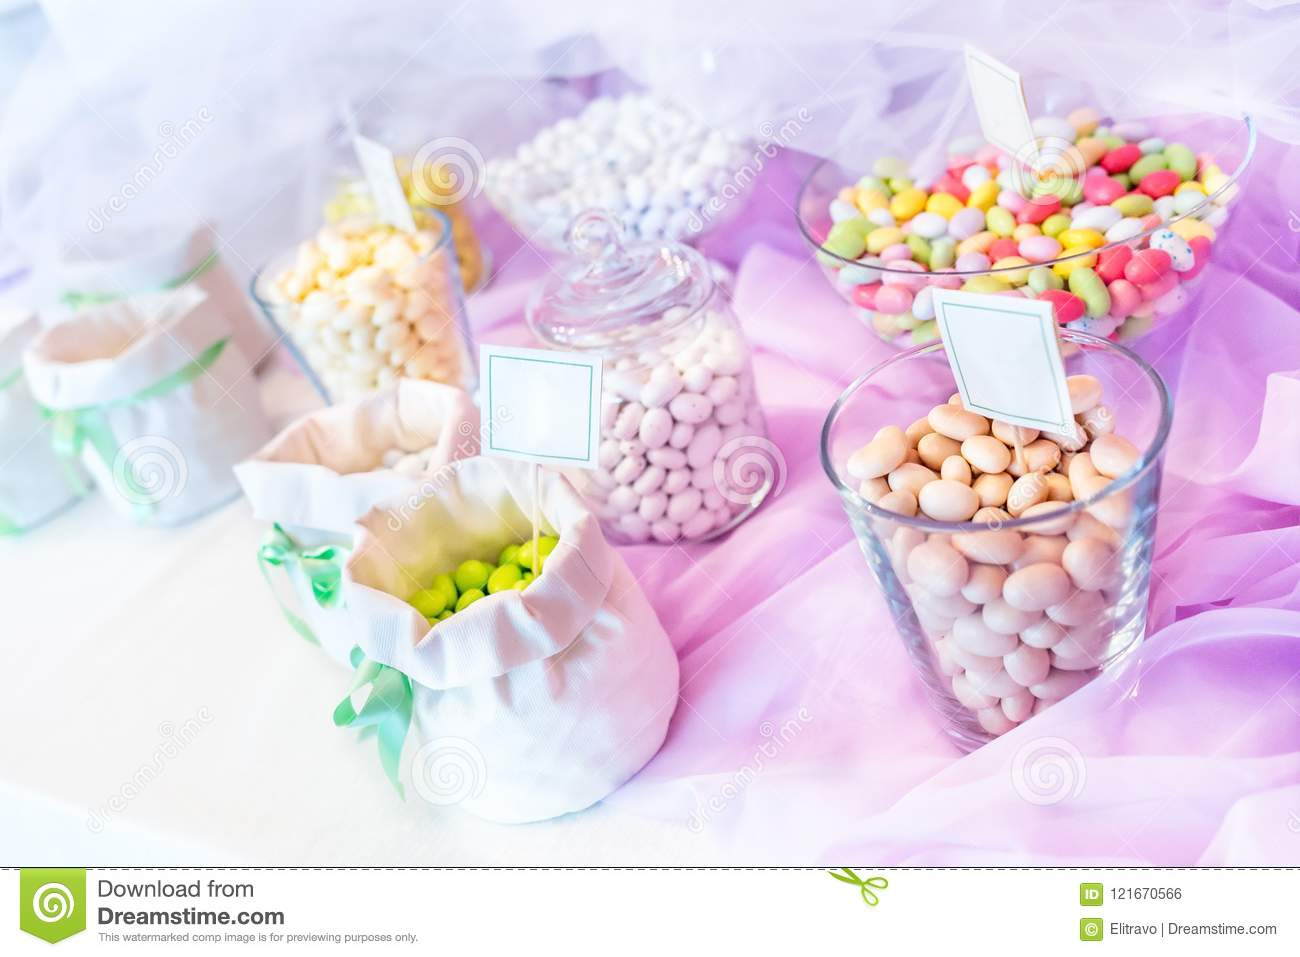 Wedding Favors And Sugar Almonds Stock Photo - Image of gift ...